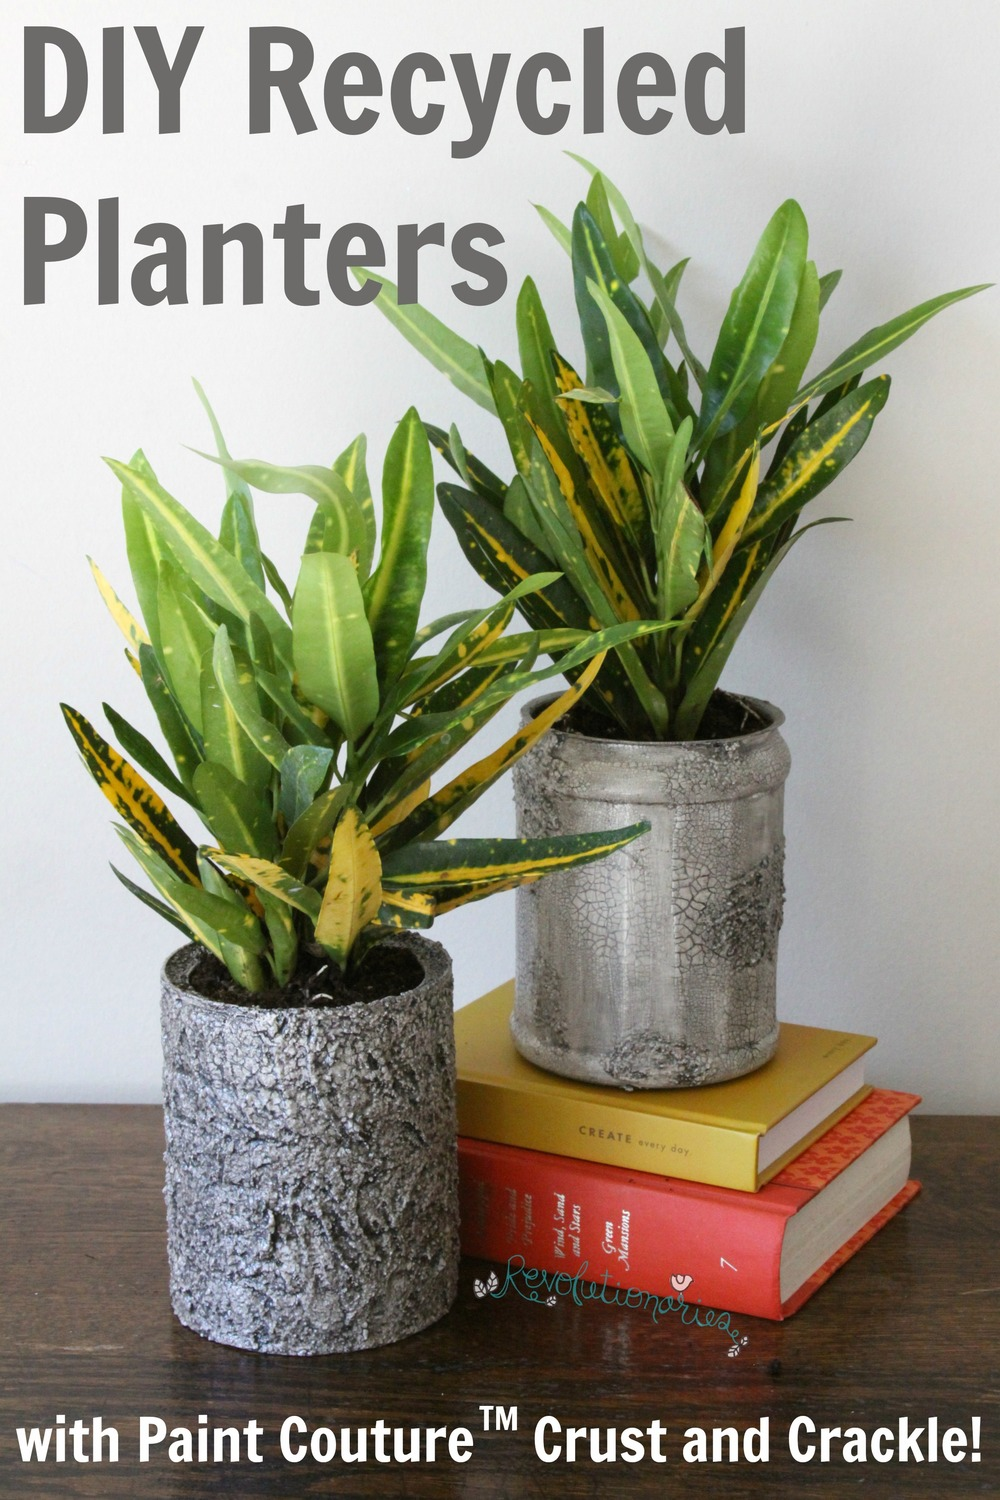 diy-recycled-planter-with-paint-couture-crust-and-crackle-3.jpg